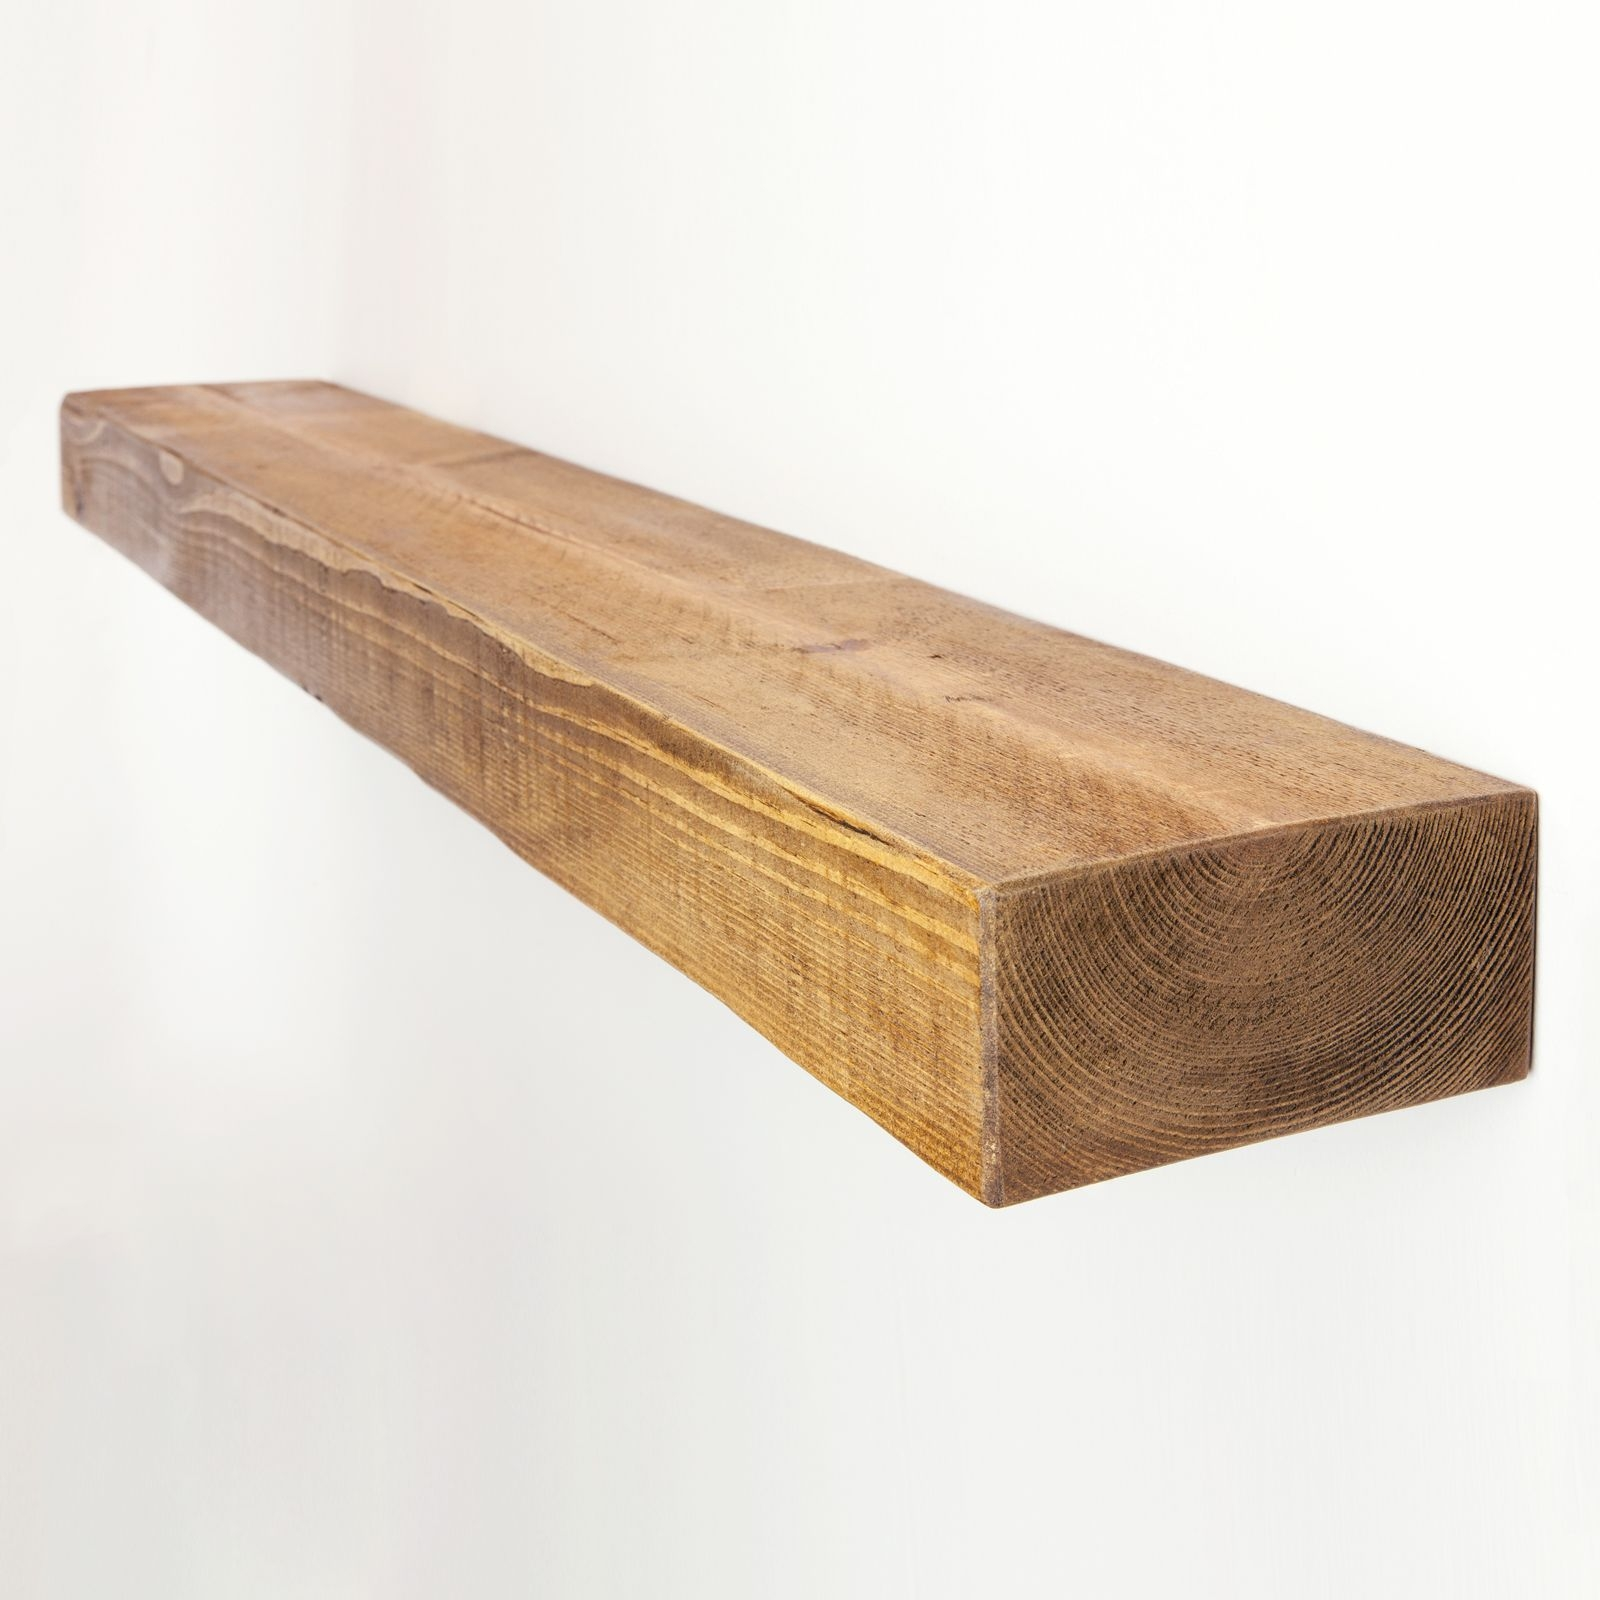 Rustic Floating Shelf 6×3 Solid Pine Funky Chunky Furniture Intended For Floating Shelf 50cm (#11 of 12)